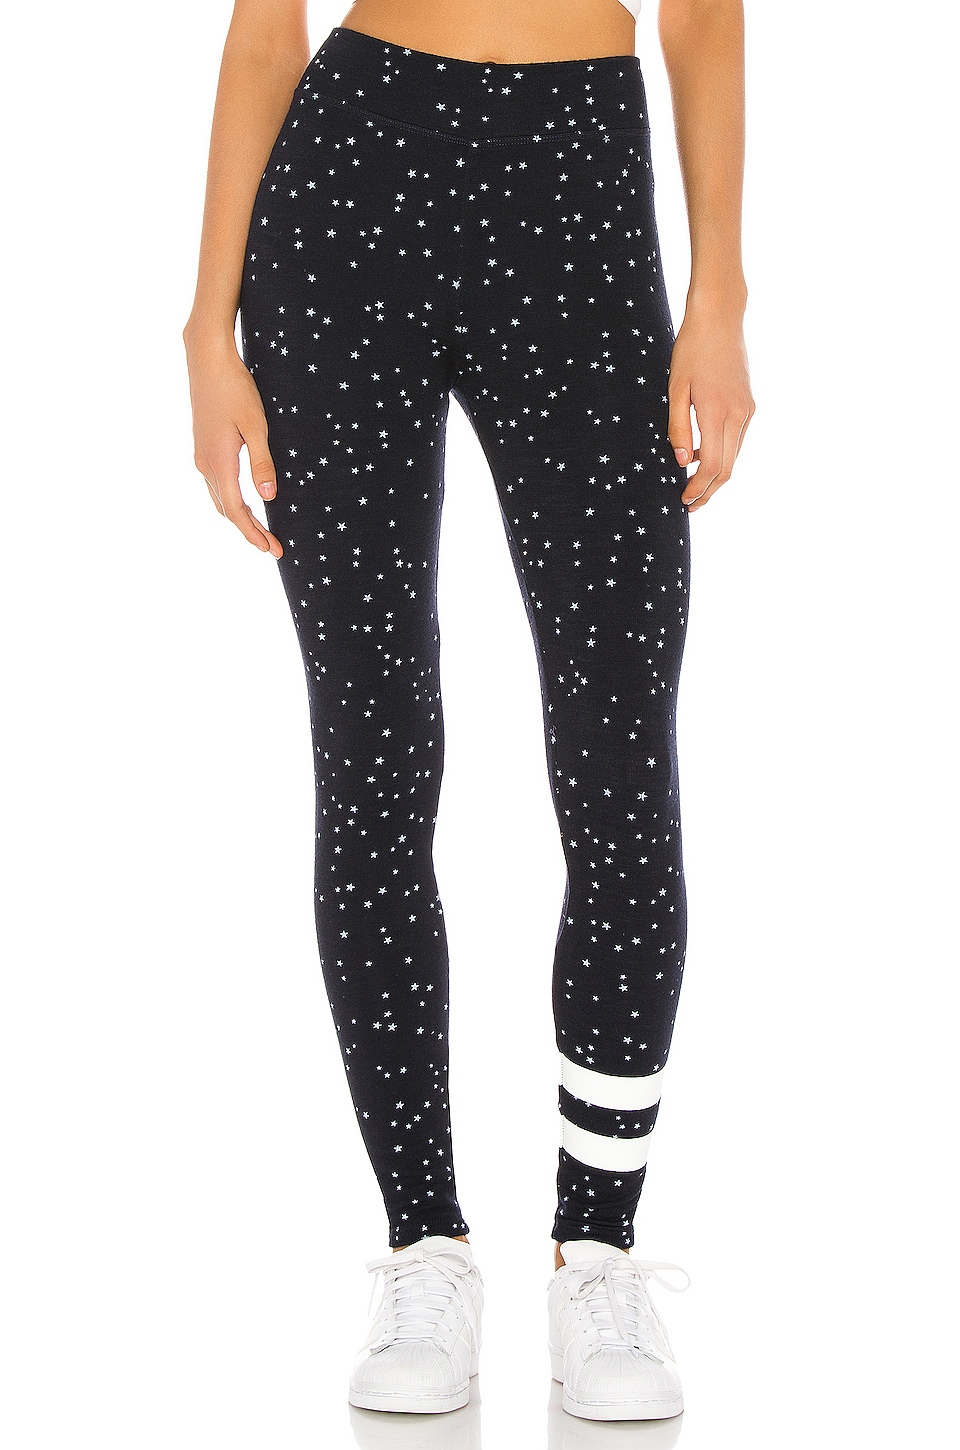 SUNDRY Stars Yoga Pant in Navy